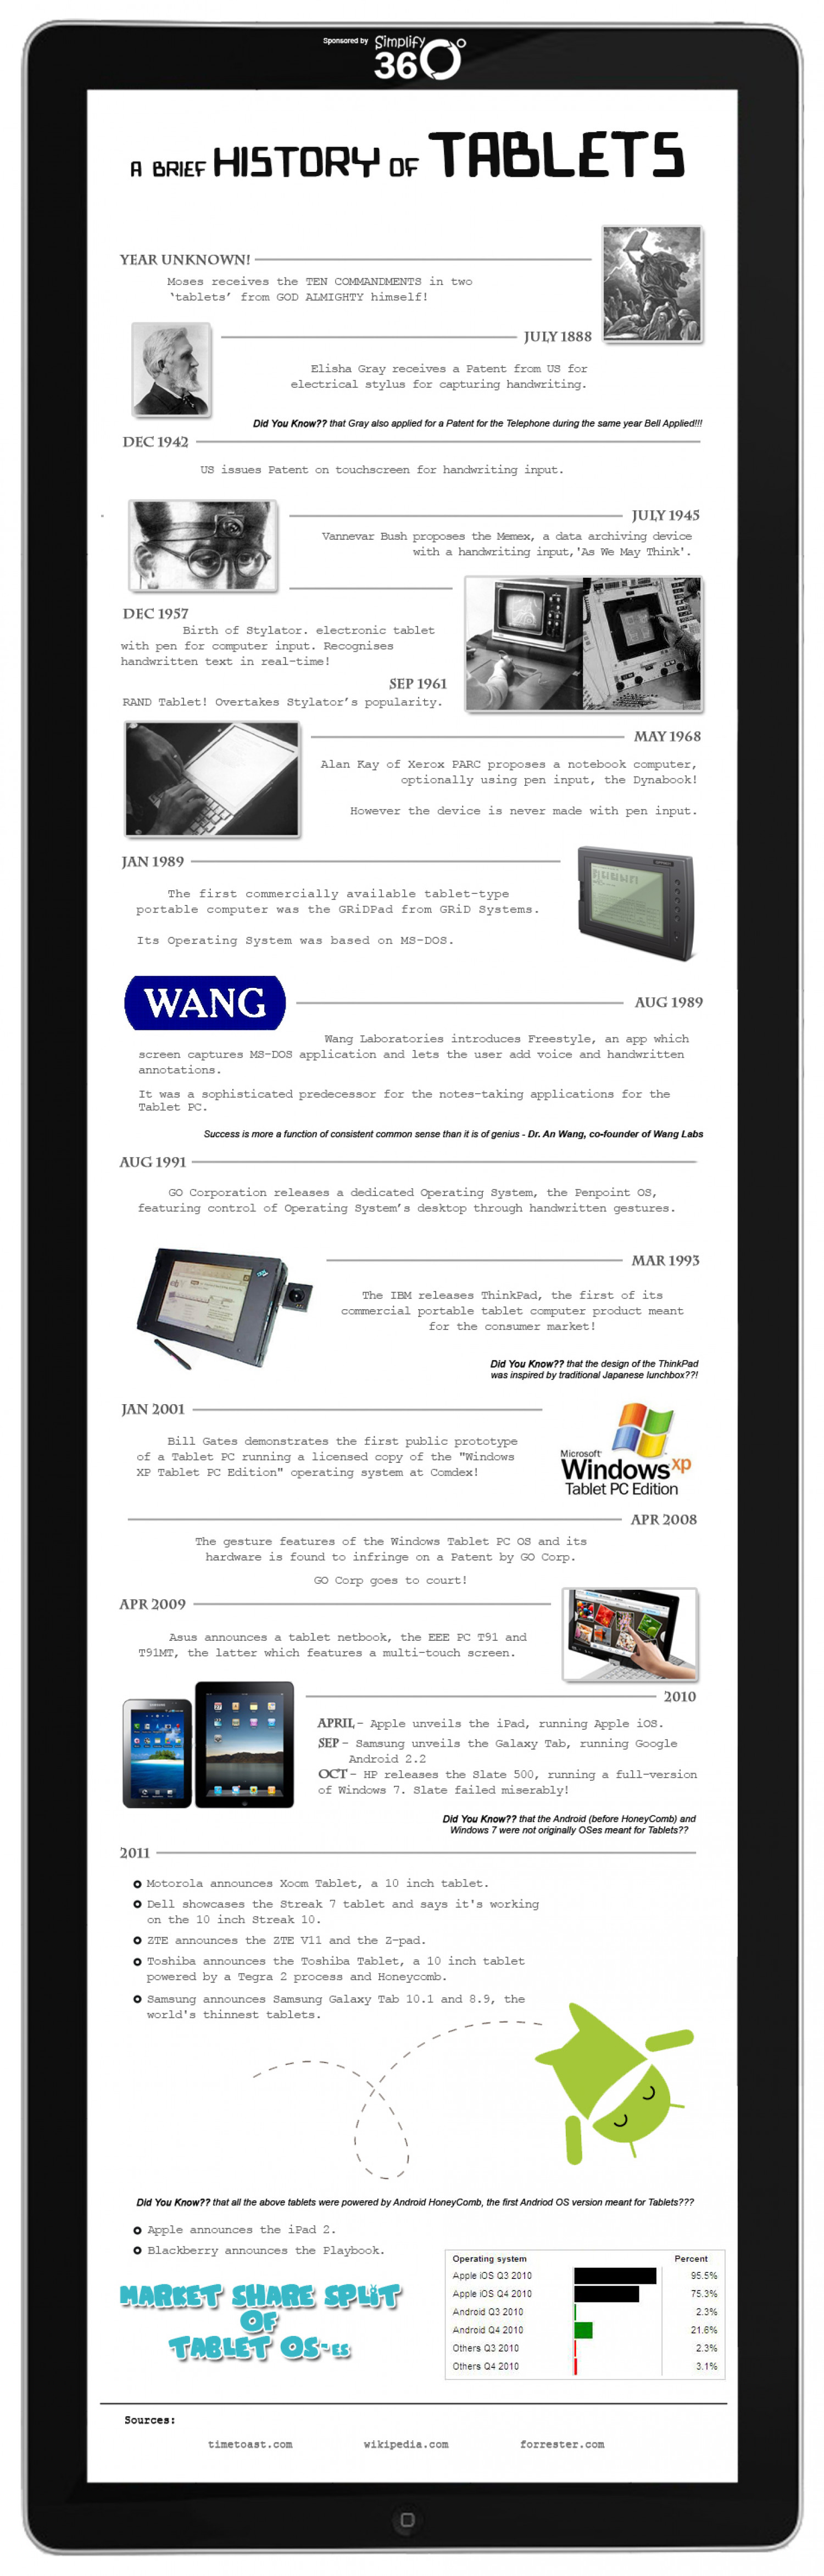 The history of Tablet Infographic